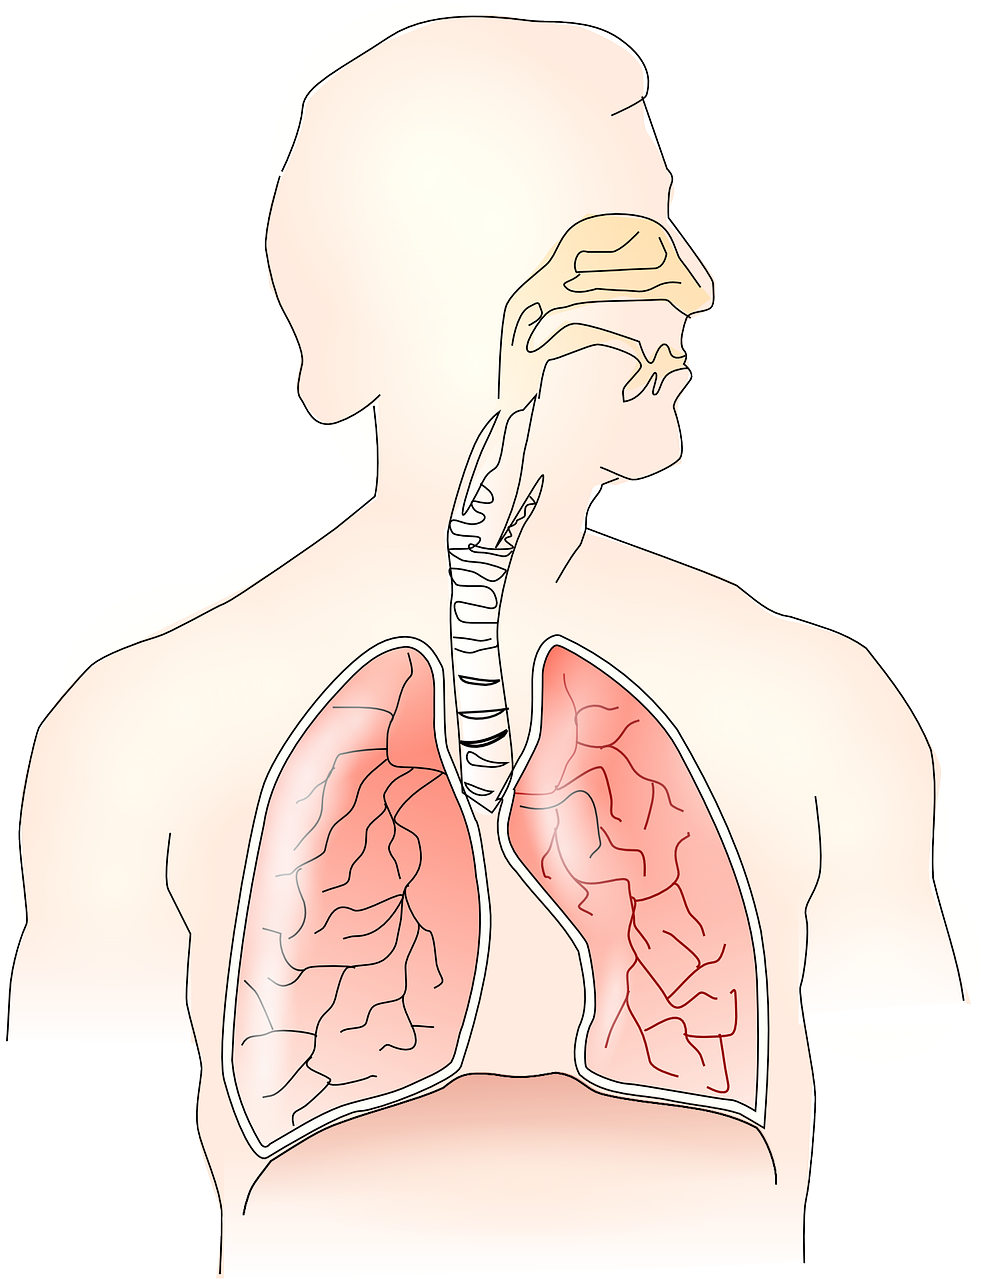 REMEDIES FOR BREATHING PROBLEMS